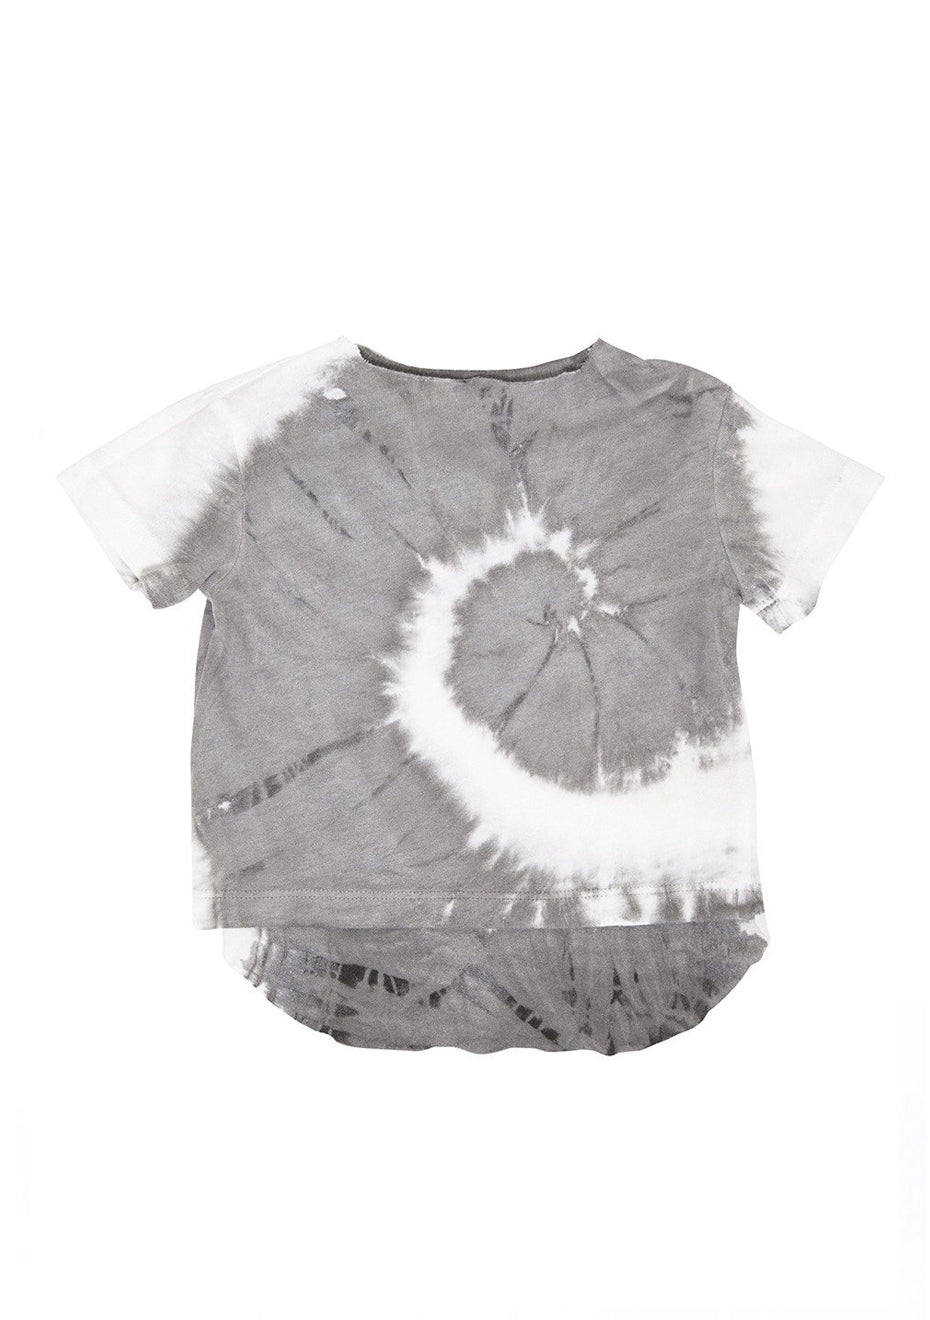 Grey White Tie Dye Jersey Baby Tee